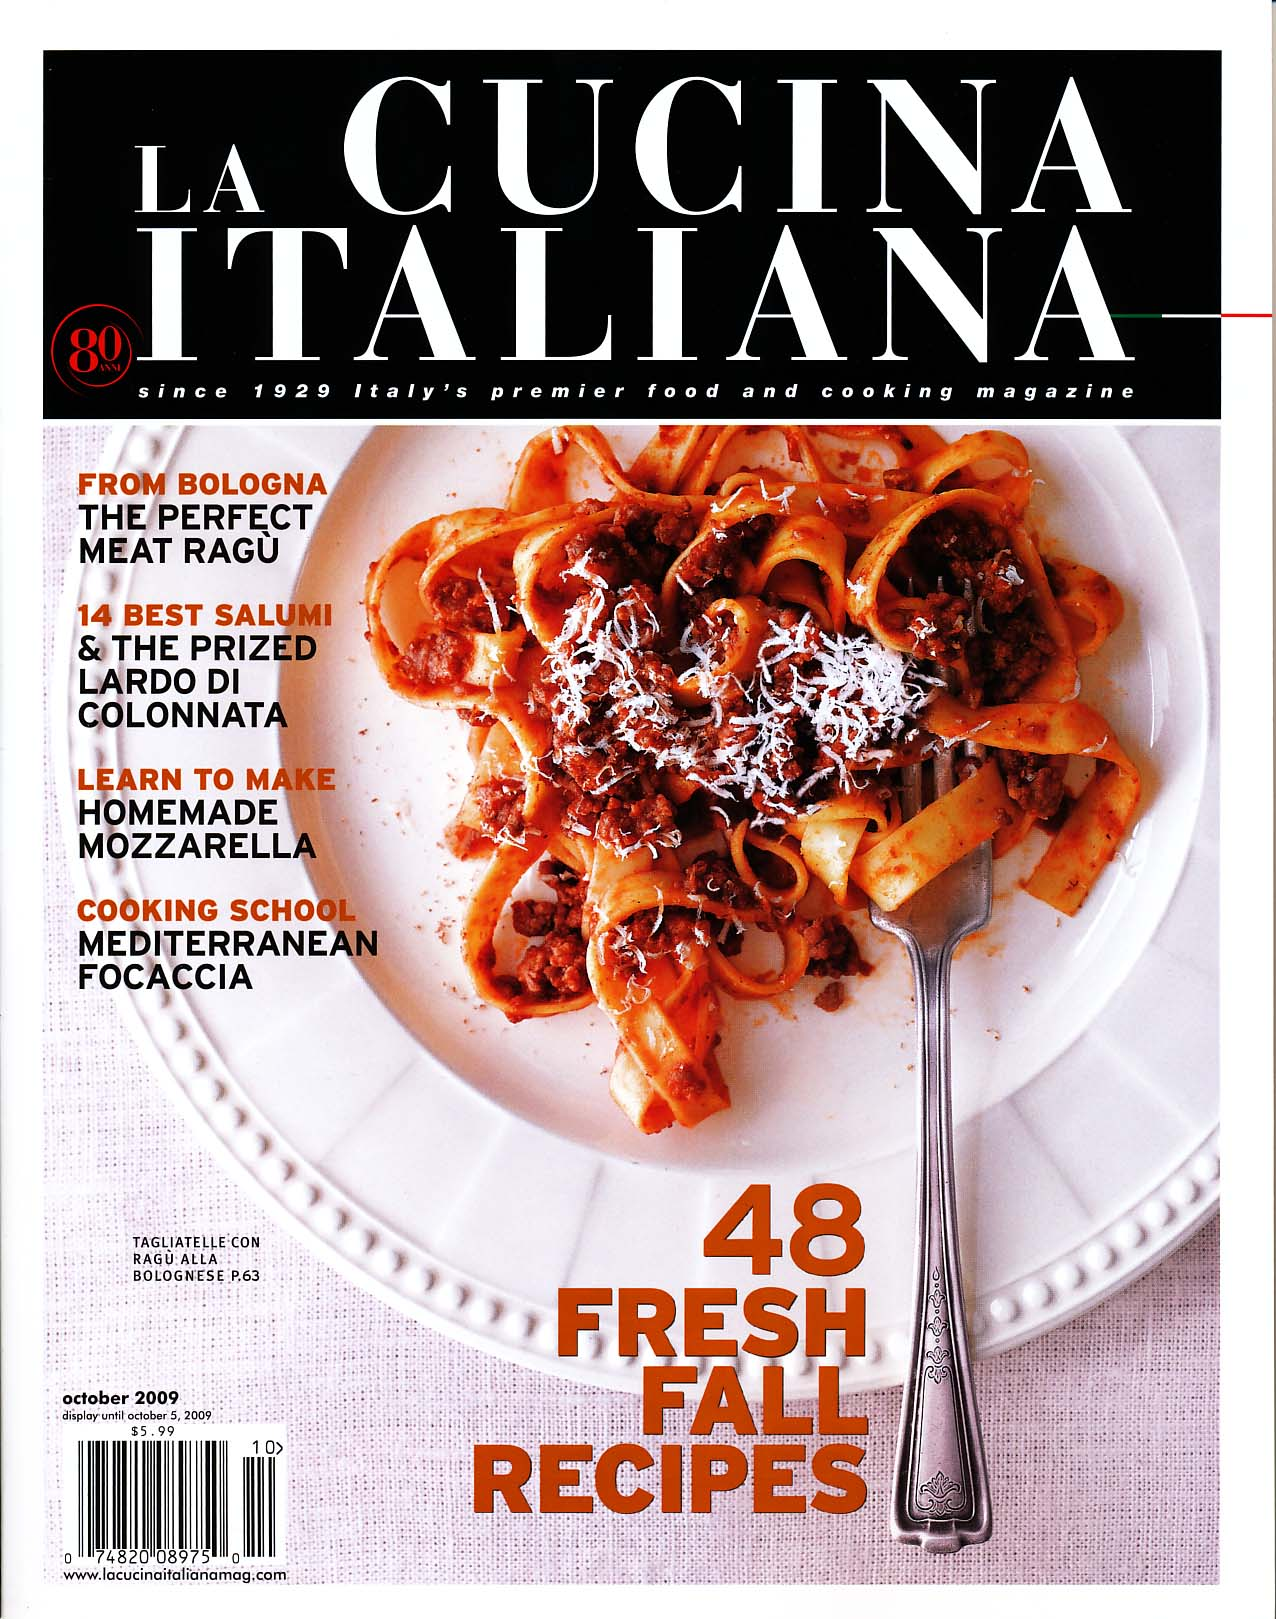 The Magazine Of La Cucina Italiana Charitybuzz Italian Culture In New York Lot 317039